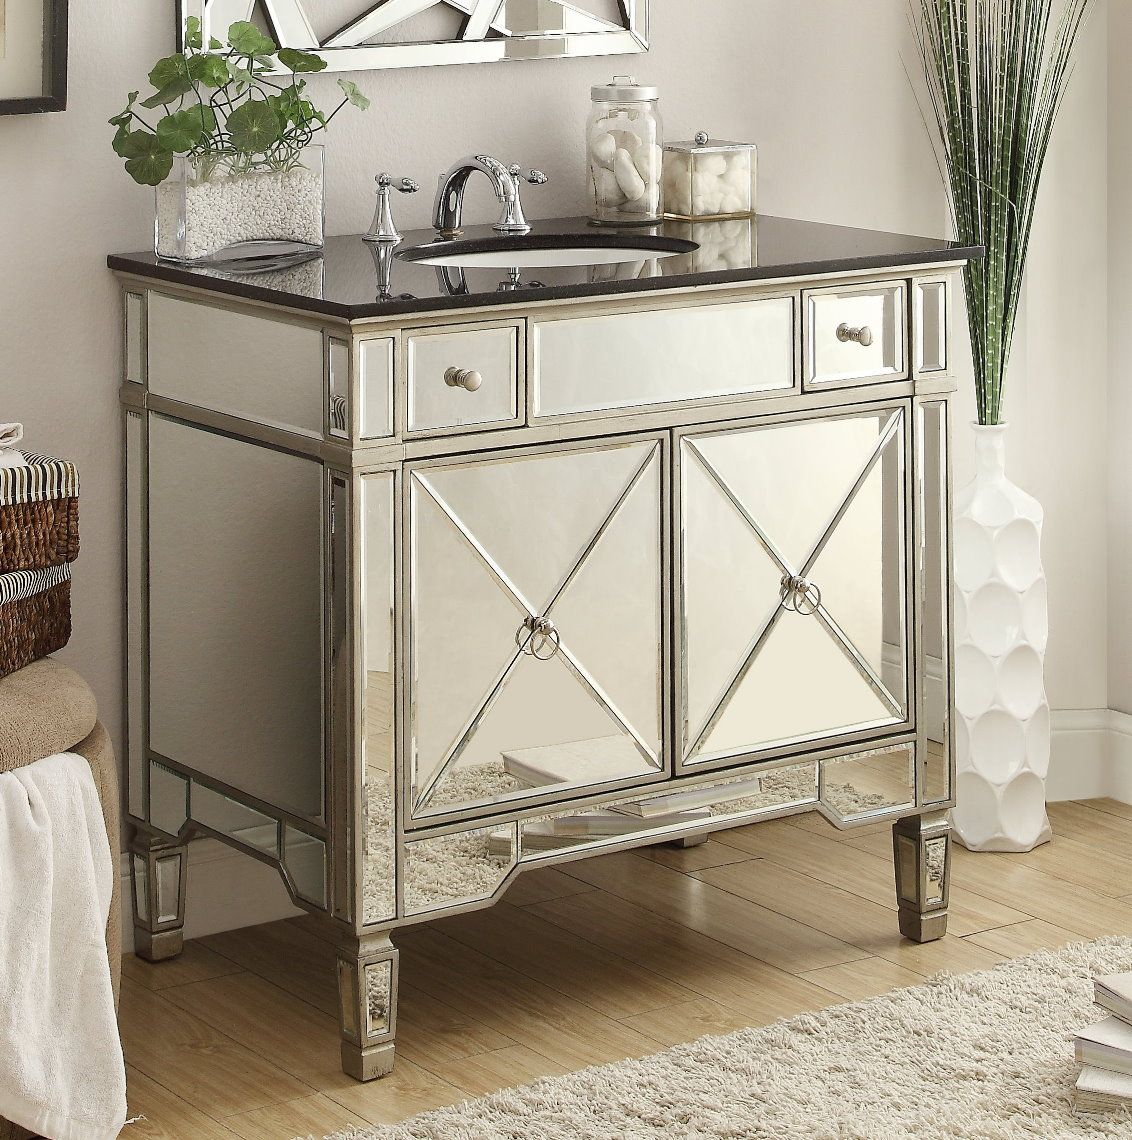 Mirrored Bathroom Vanity With Sink Pin By Bathrooms Direct On Mirrored Bathroom Vanities In